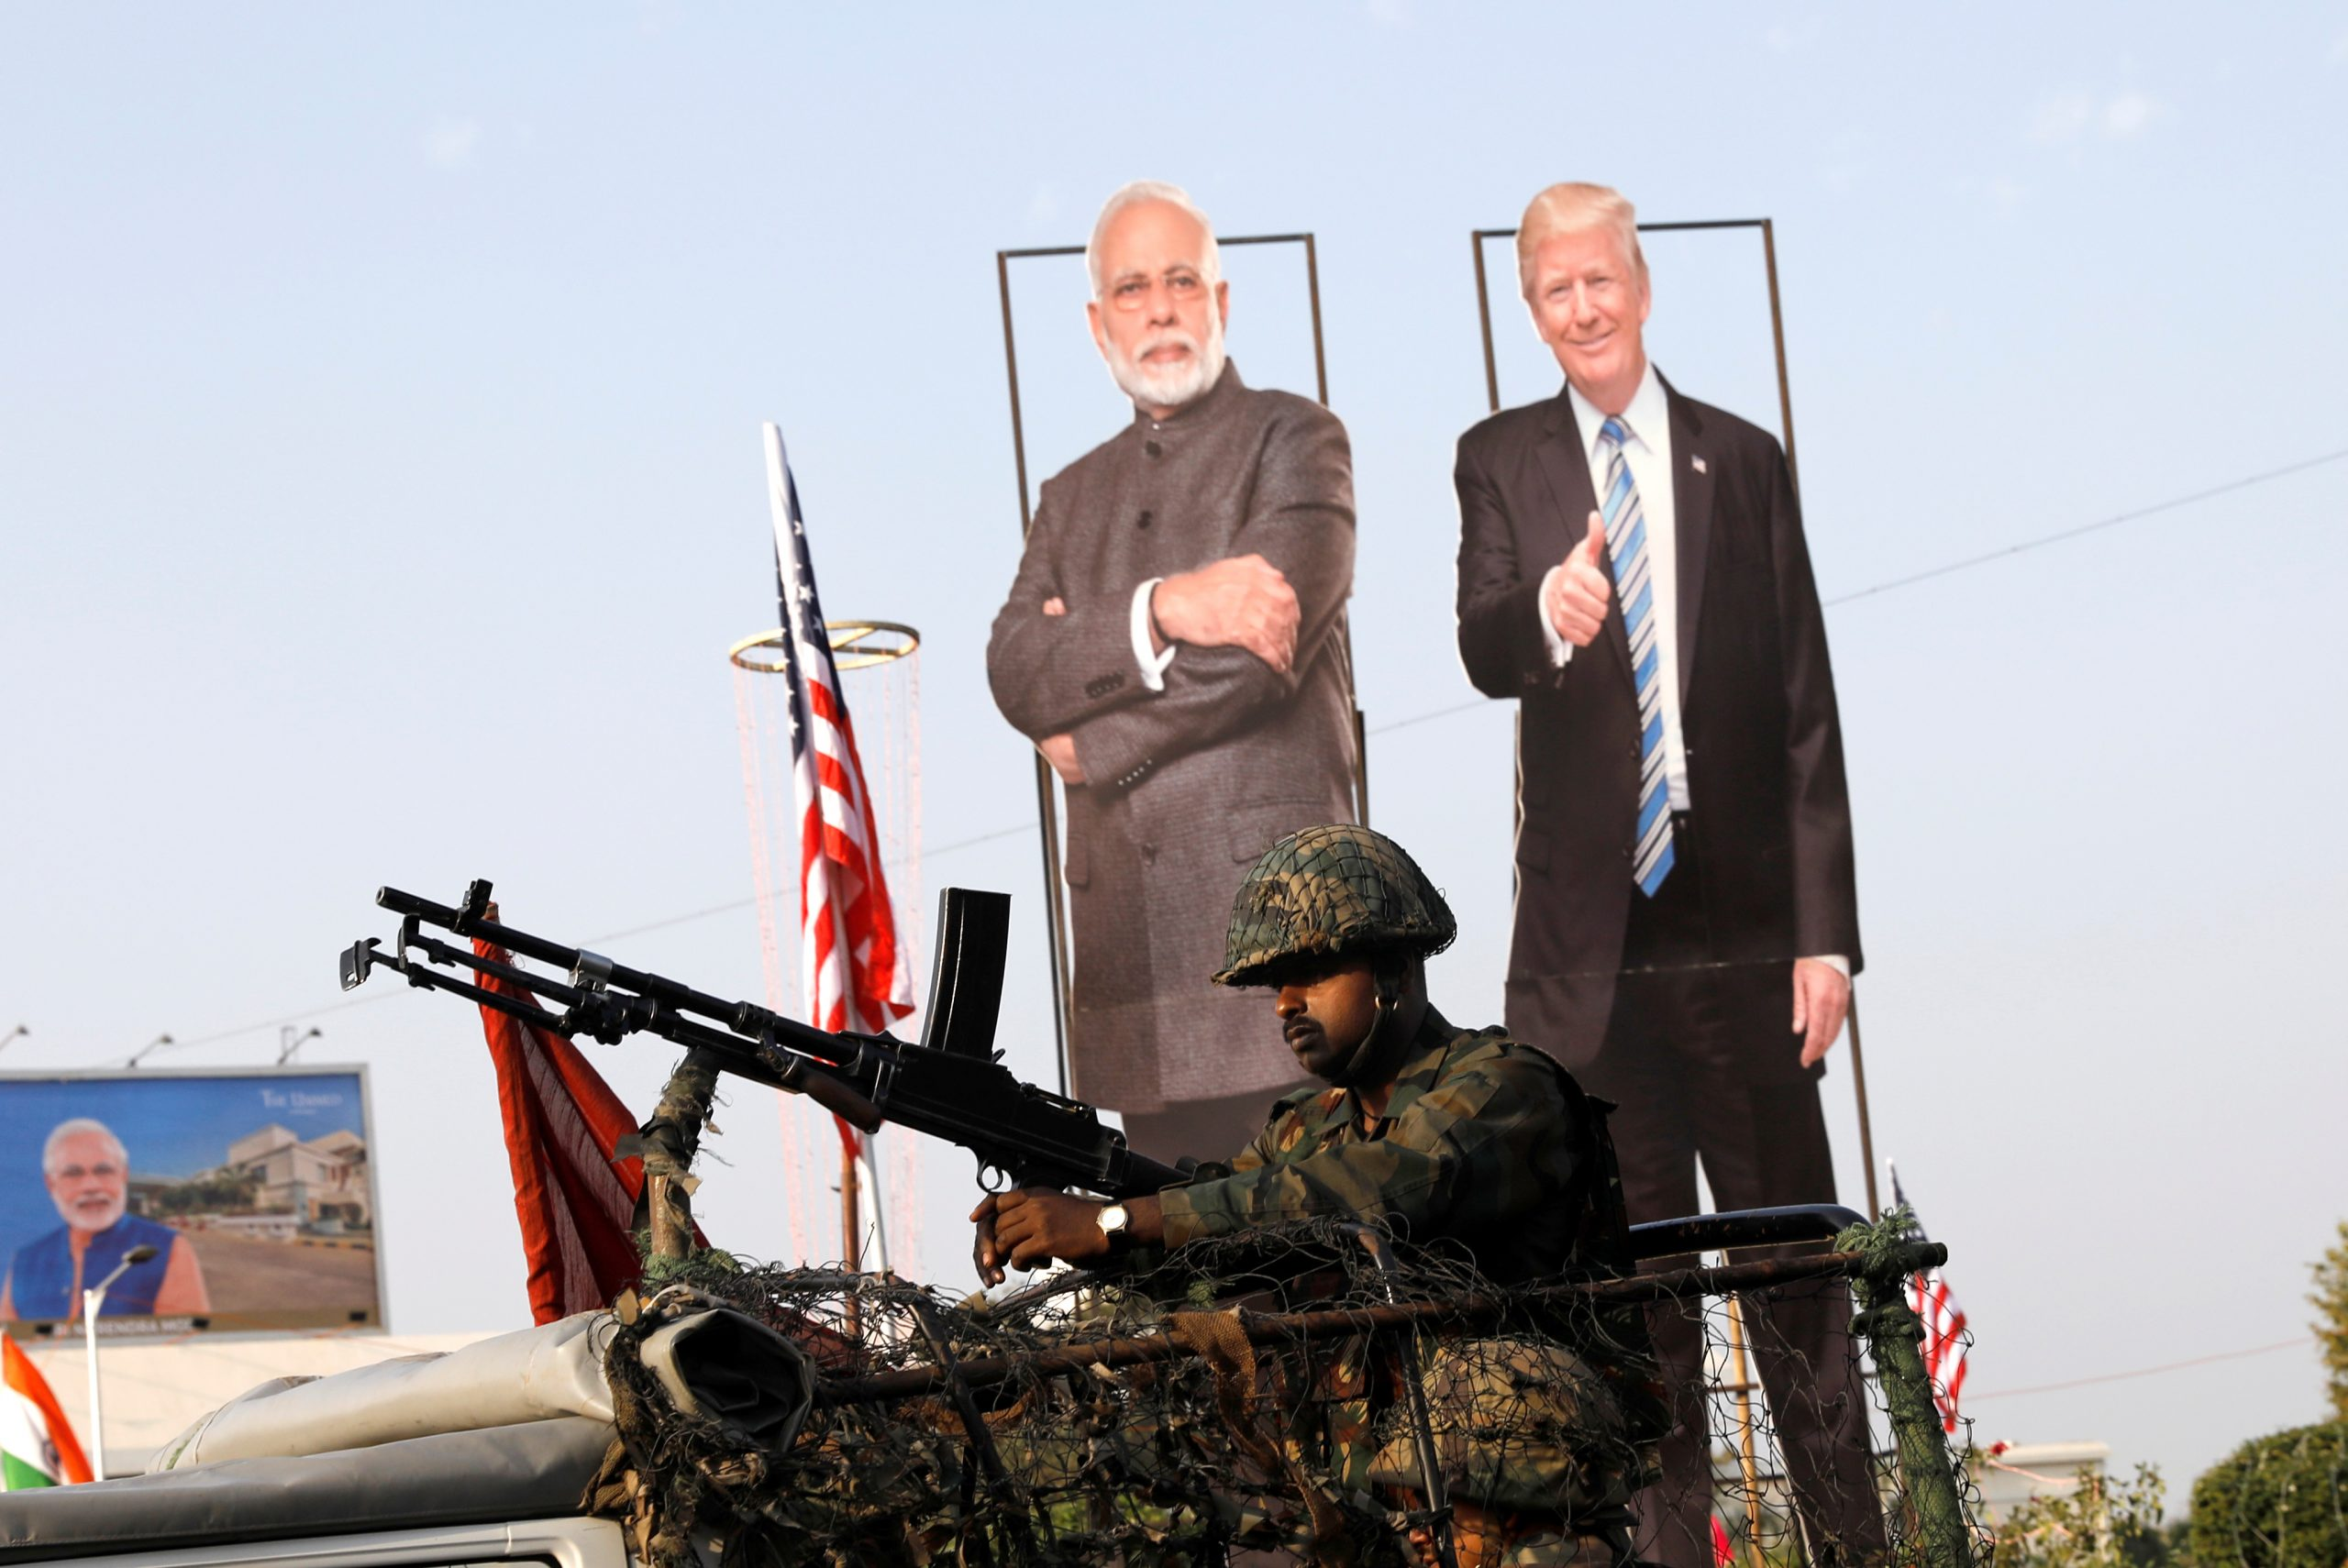 An Indian soldier keeping vigil atop an armoured vehicle next to cutouts of Indian Prime Minister Narendra Modi and US President Donald Trump in Ahmedabad, Gujarat. Trump's India visit starts on Monday (24). (Photo: Reuters/Adnan Abidi)